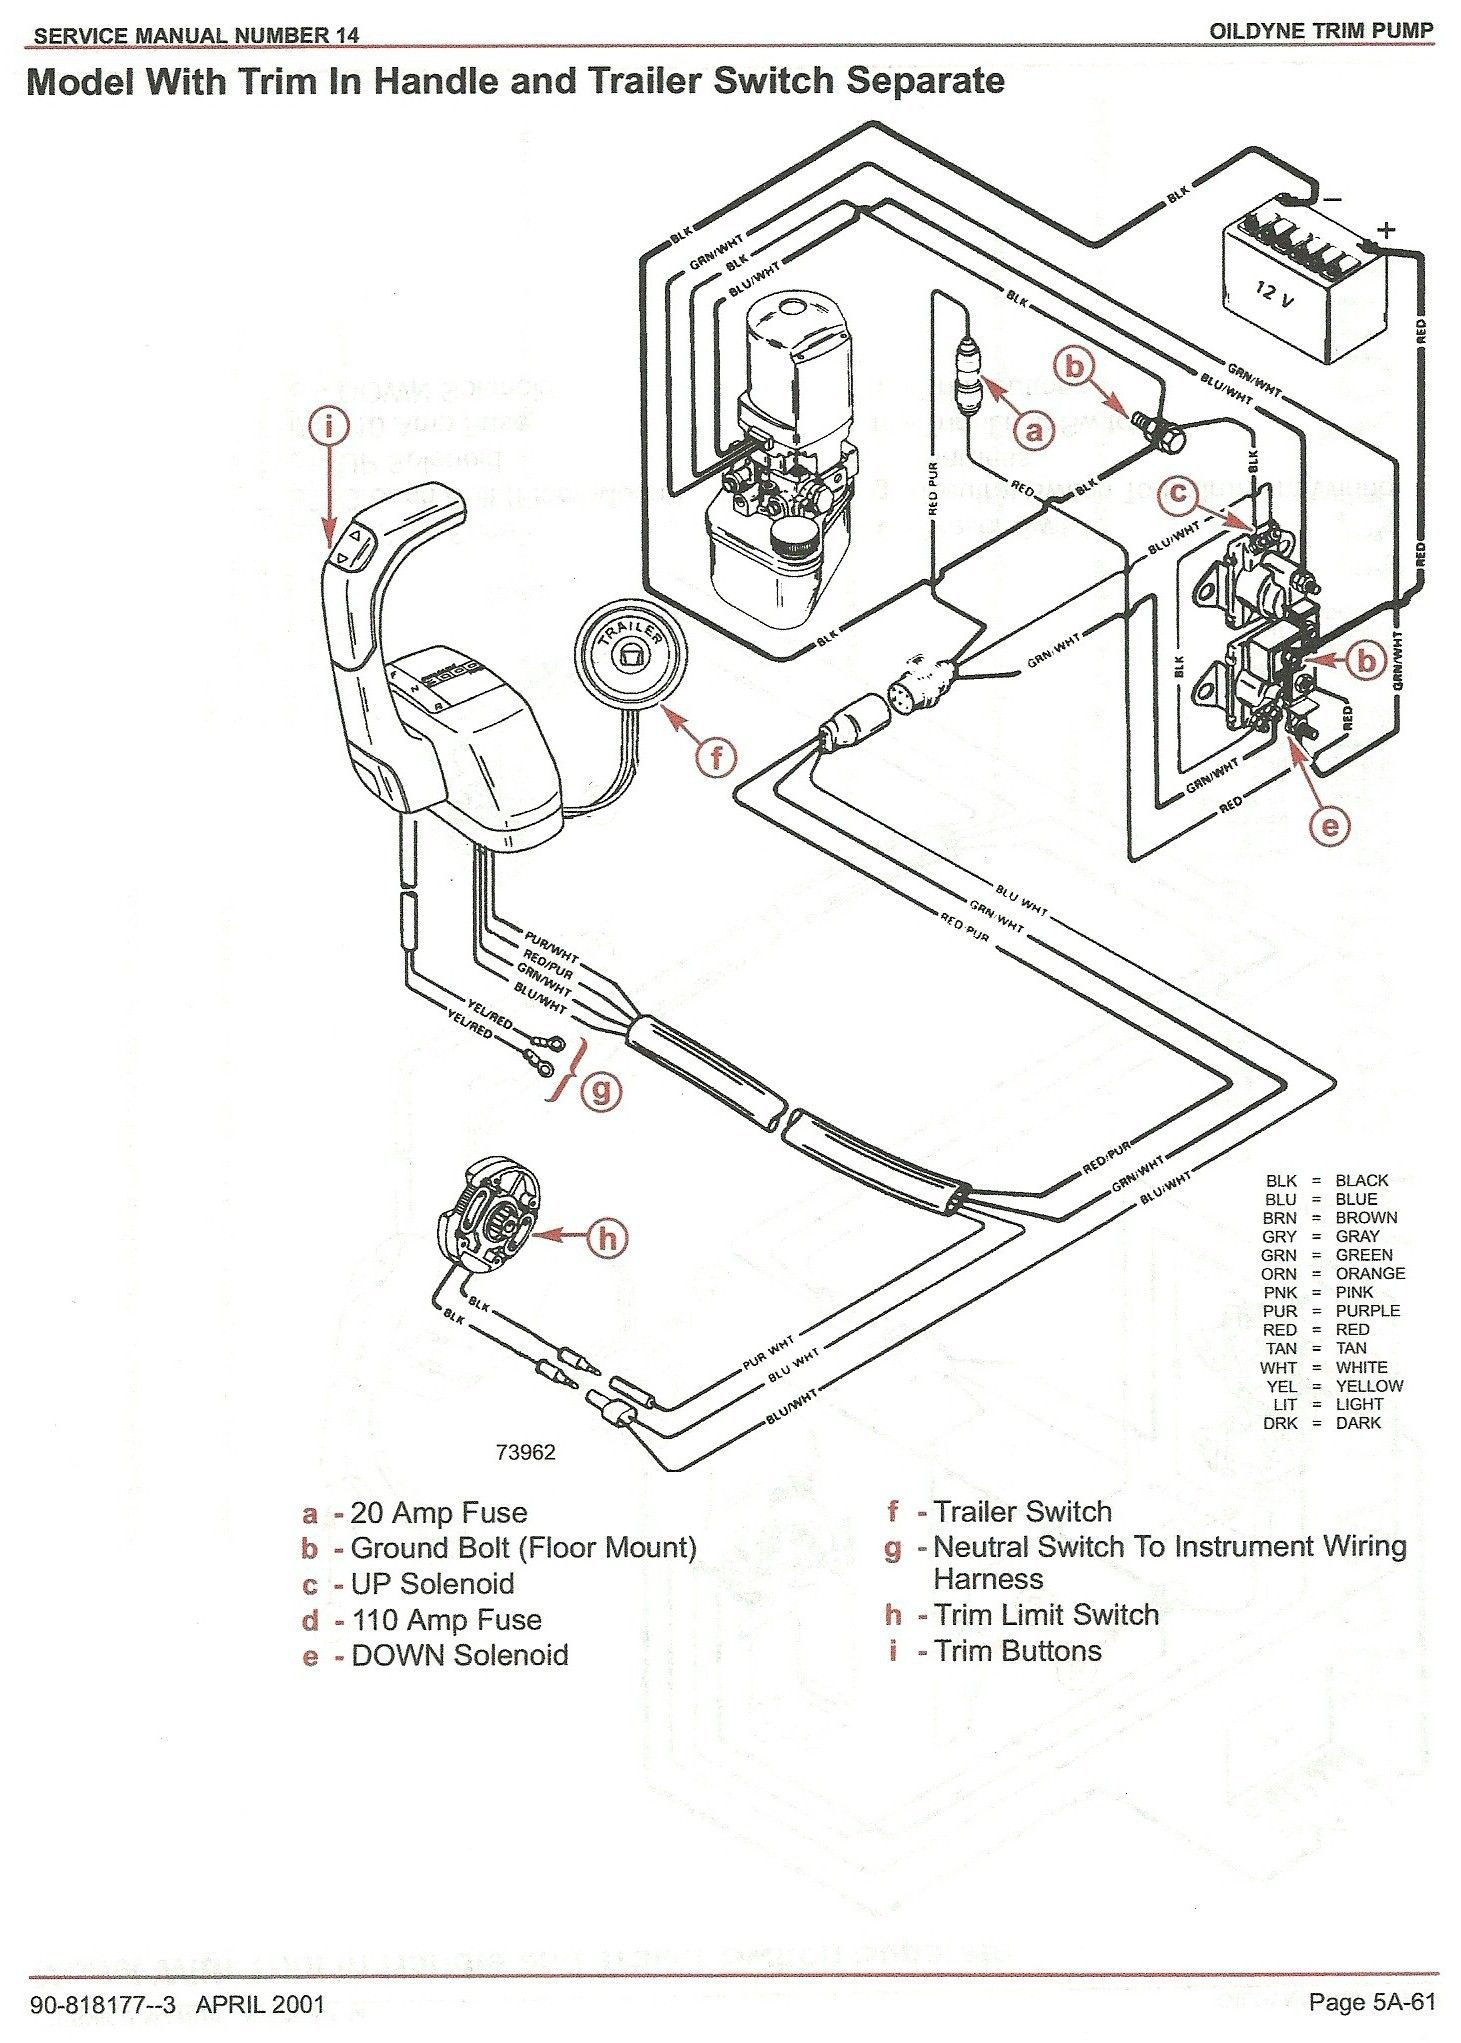 2001 Mercruiser 5 0 Wiring Diagram | Wiring Diagram Centre on leviton gfci wiring-diagram, ford f550 wiring-diagram, international 4300 wiring-diagram, honeywell aquastat wiring-diagram, sears craftsman wiring-diagram, isuzu npr wiring-diagram, emg pickups wiring-diagram, trim sender wiring-diagram, voltmeter wiring-diagram, peterbilt 387 wiring-diagram, leviton dimmer wiring-diagram, sea ray wiring-diagram, ford e-150 wiring-diagram, swm splitter wiring-diagram, lutron dimmer wiring-diagram, chevrolet colorado wiring-diagram, farmall cub wiring-diagram, gibson humbucker wiring-diagram, klipsch promedia 2.1 wiring-diagram, mercedes-benz wiring-diagram,